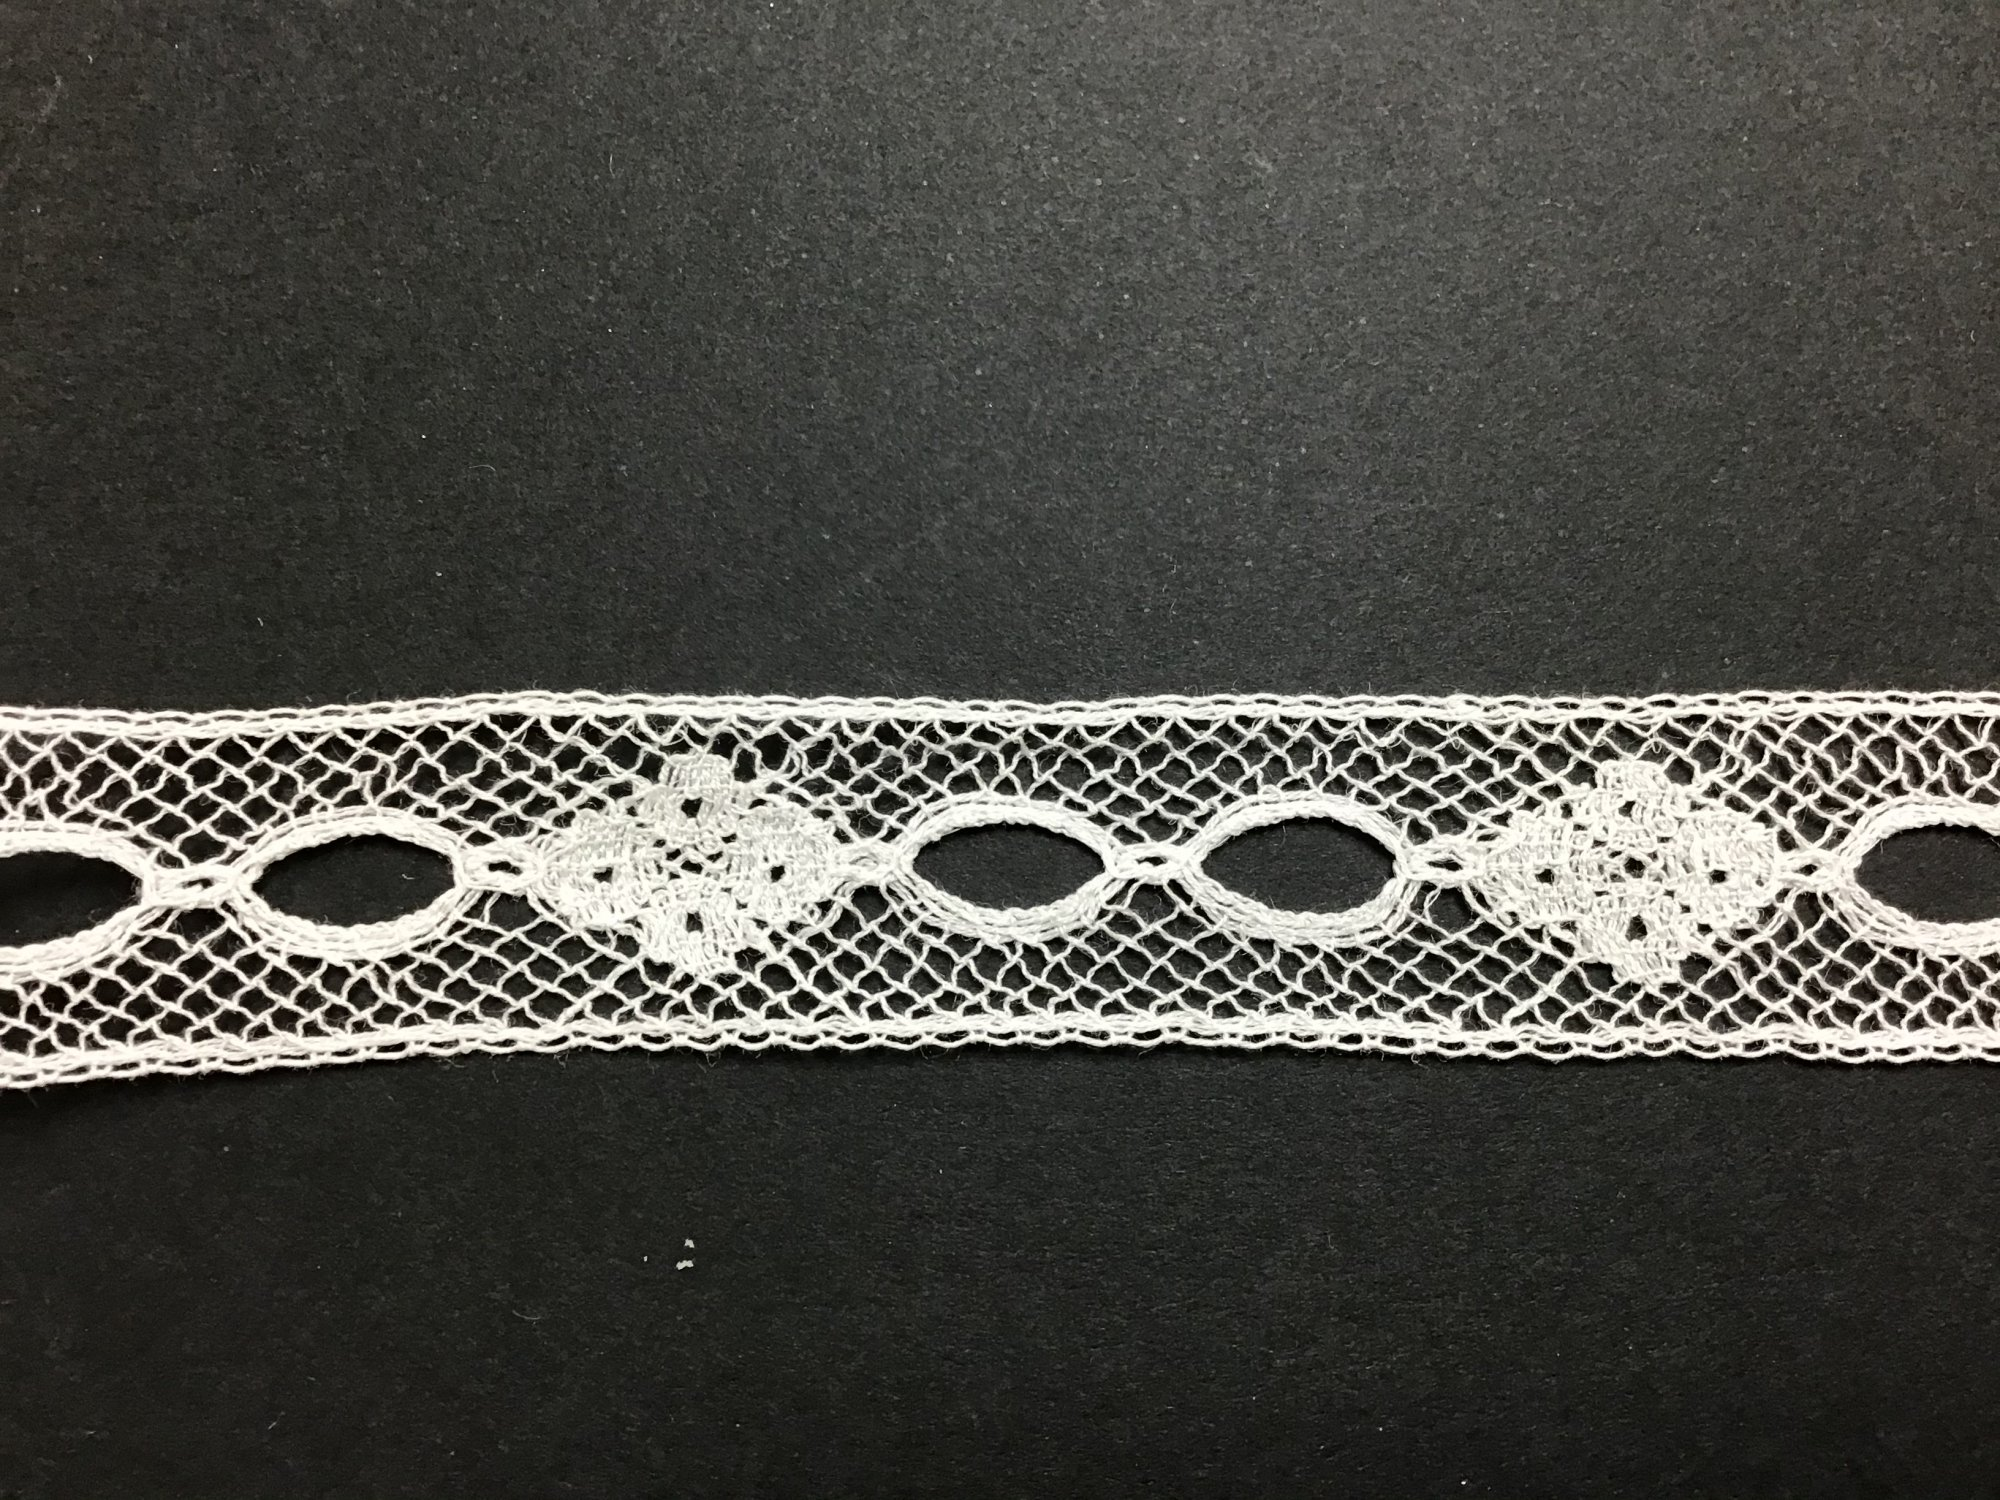 French Lace Beading 5/8 Inch Ecru 6218-04